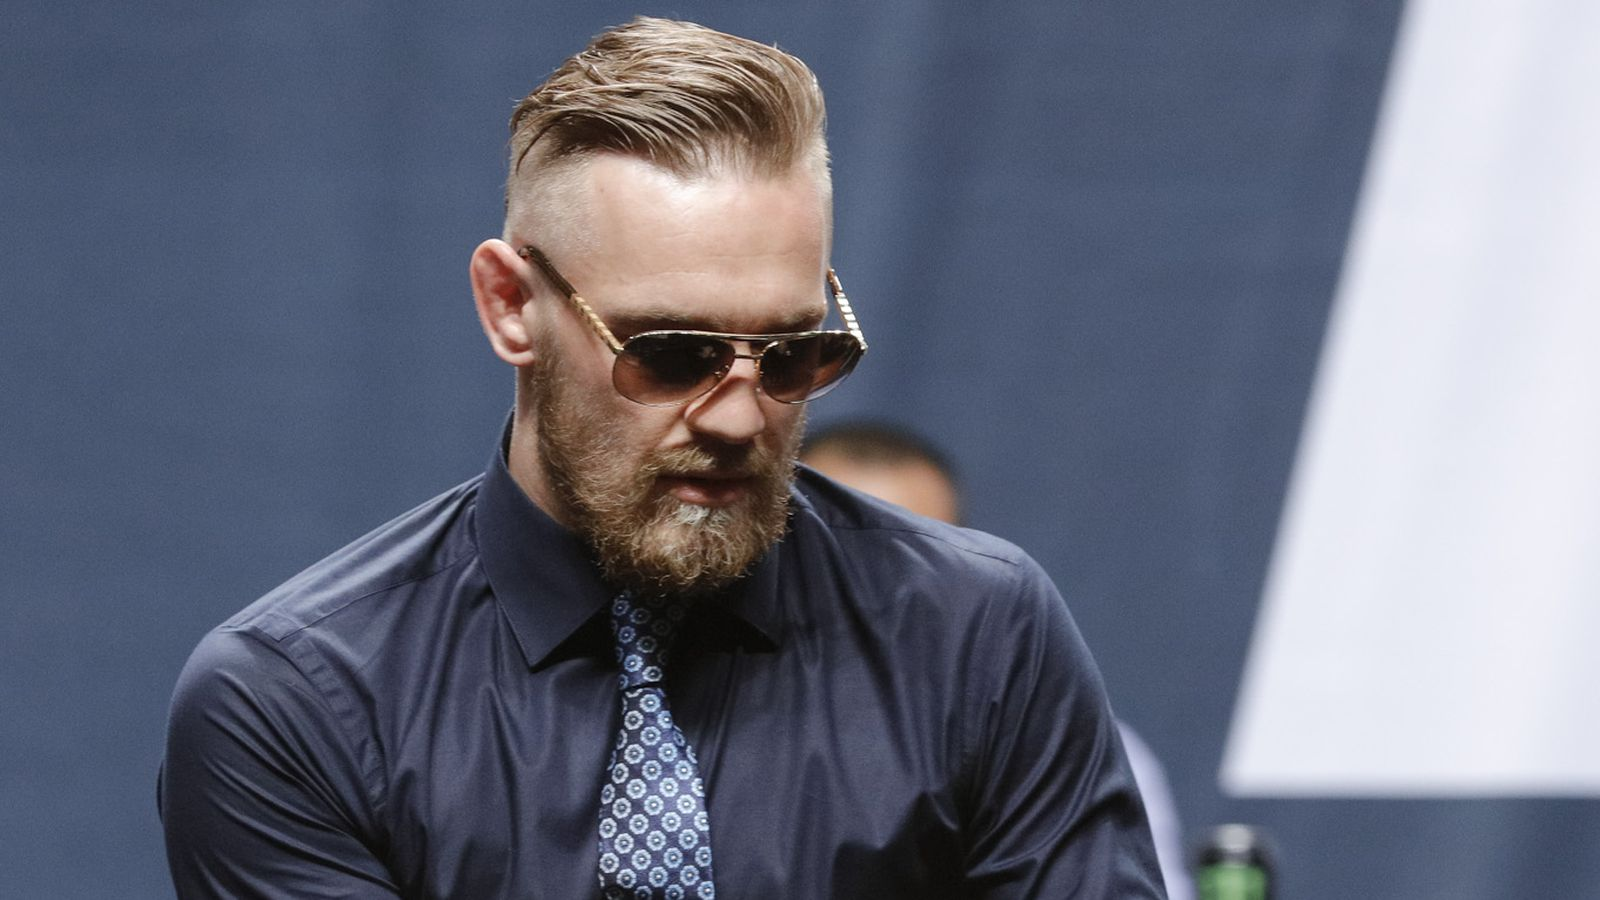 Conor McGregor may or may not be retired. But, either way, he won't be ...